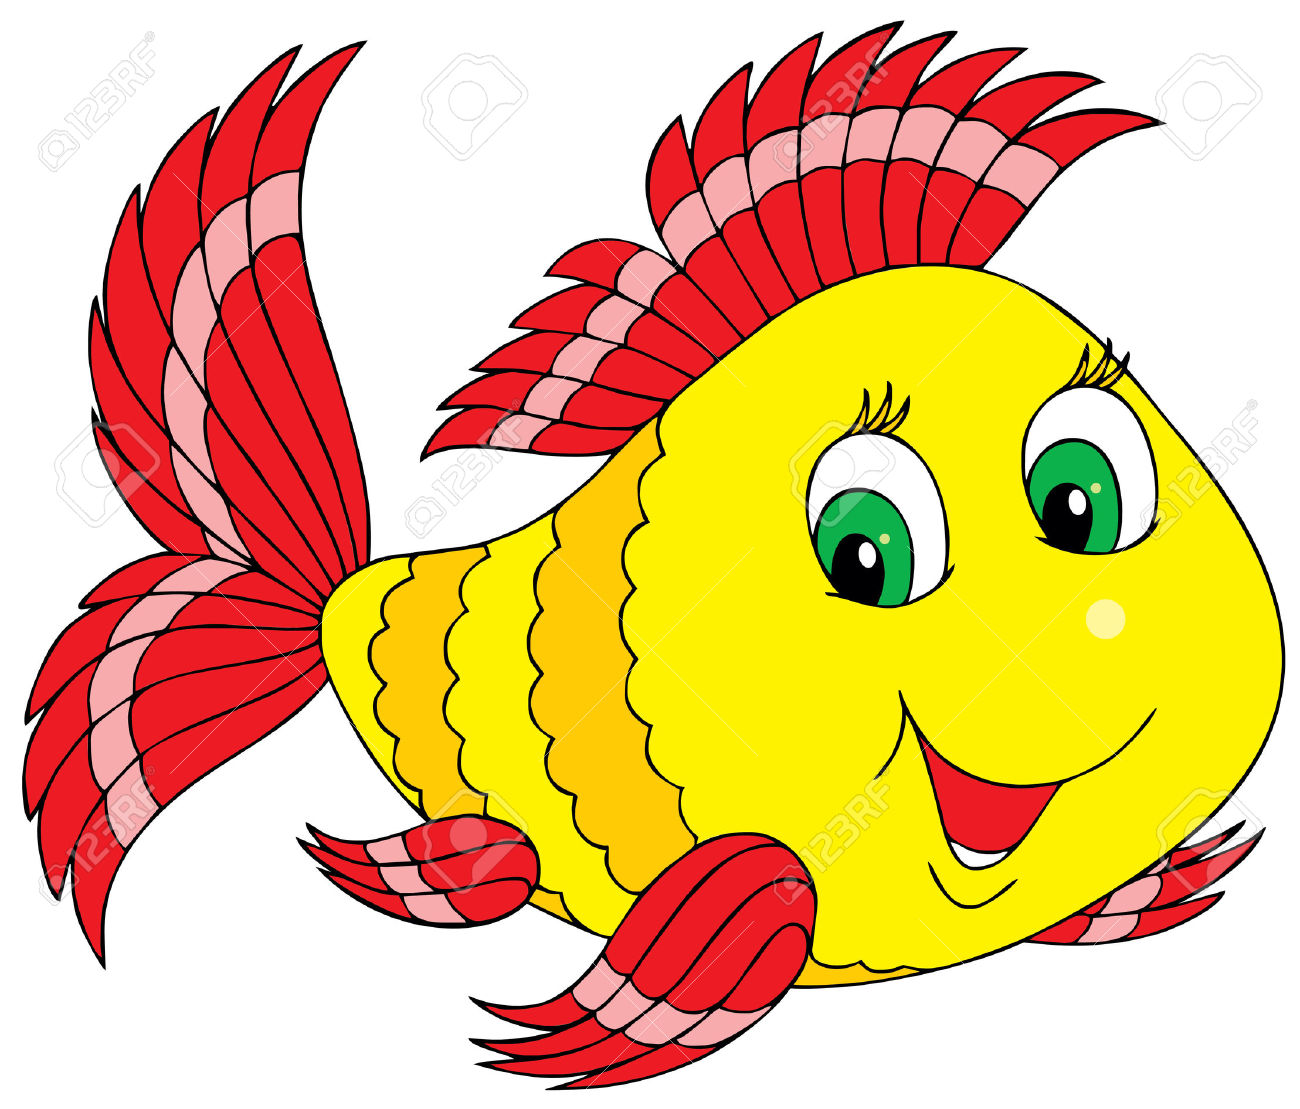 fish cartoon clipart at getdrawings com free for personal use fish rh getdrawings com fish pics clipart fish image clipart